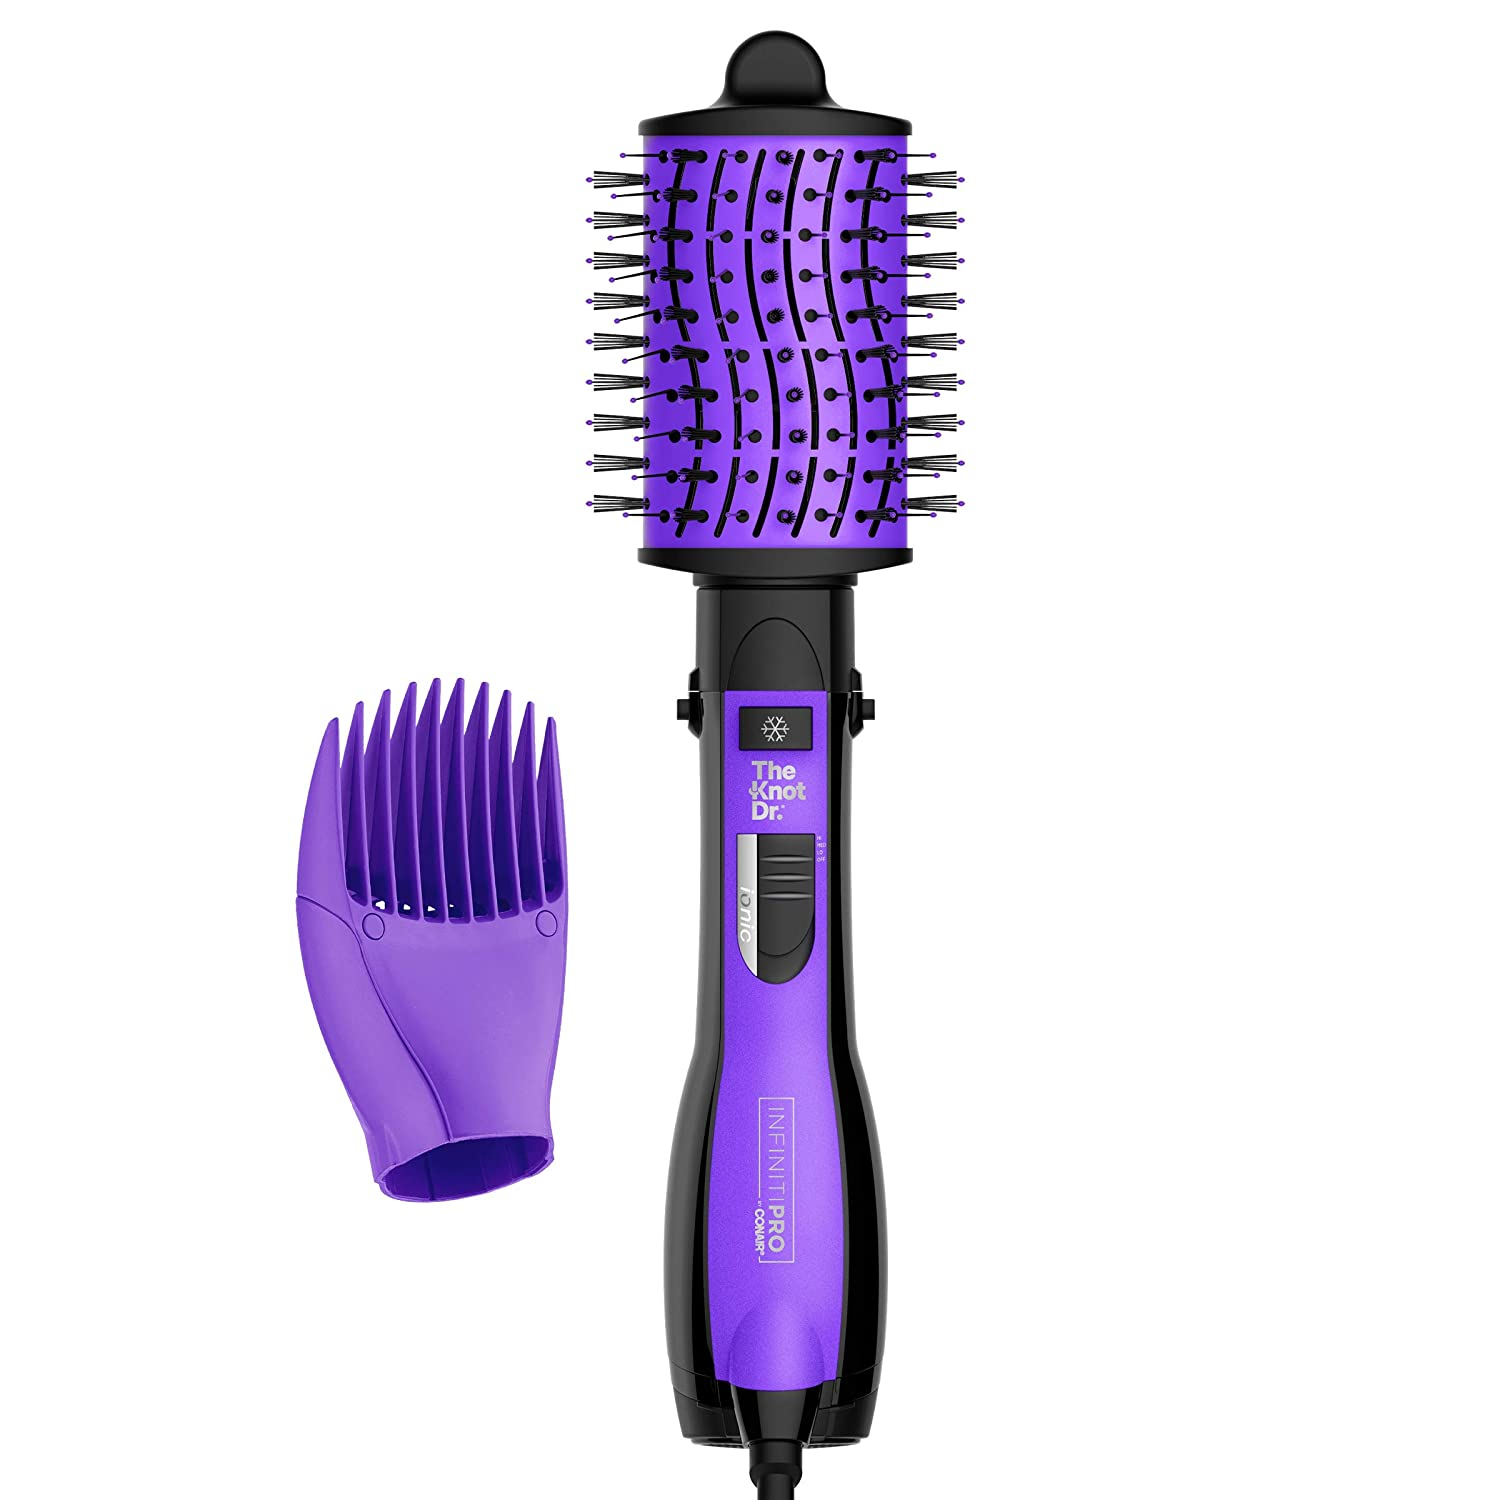 INFINITIPRO BY CONAIR The Knot Dr. Max 52% OFF D shopping Brush All-in-One Dryer Wet